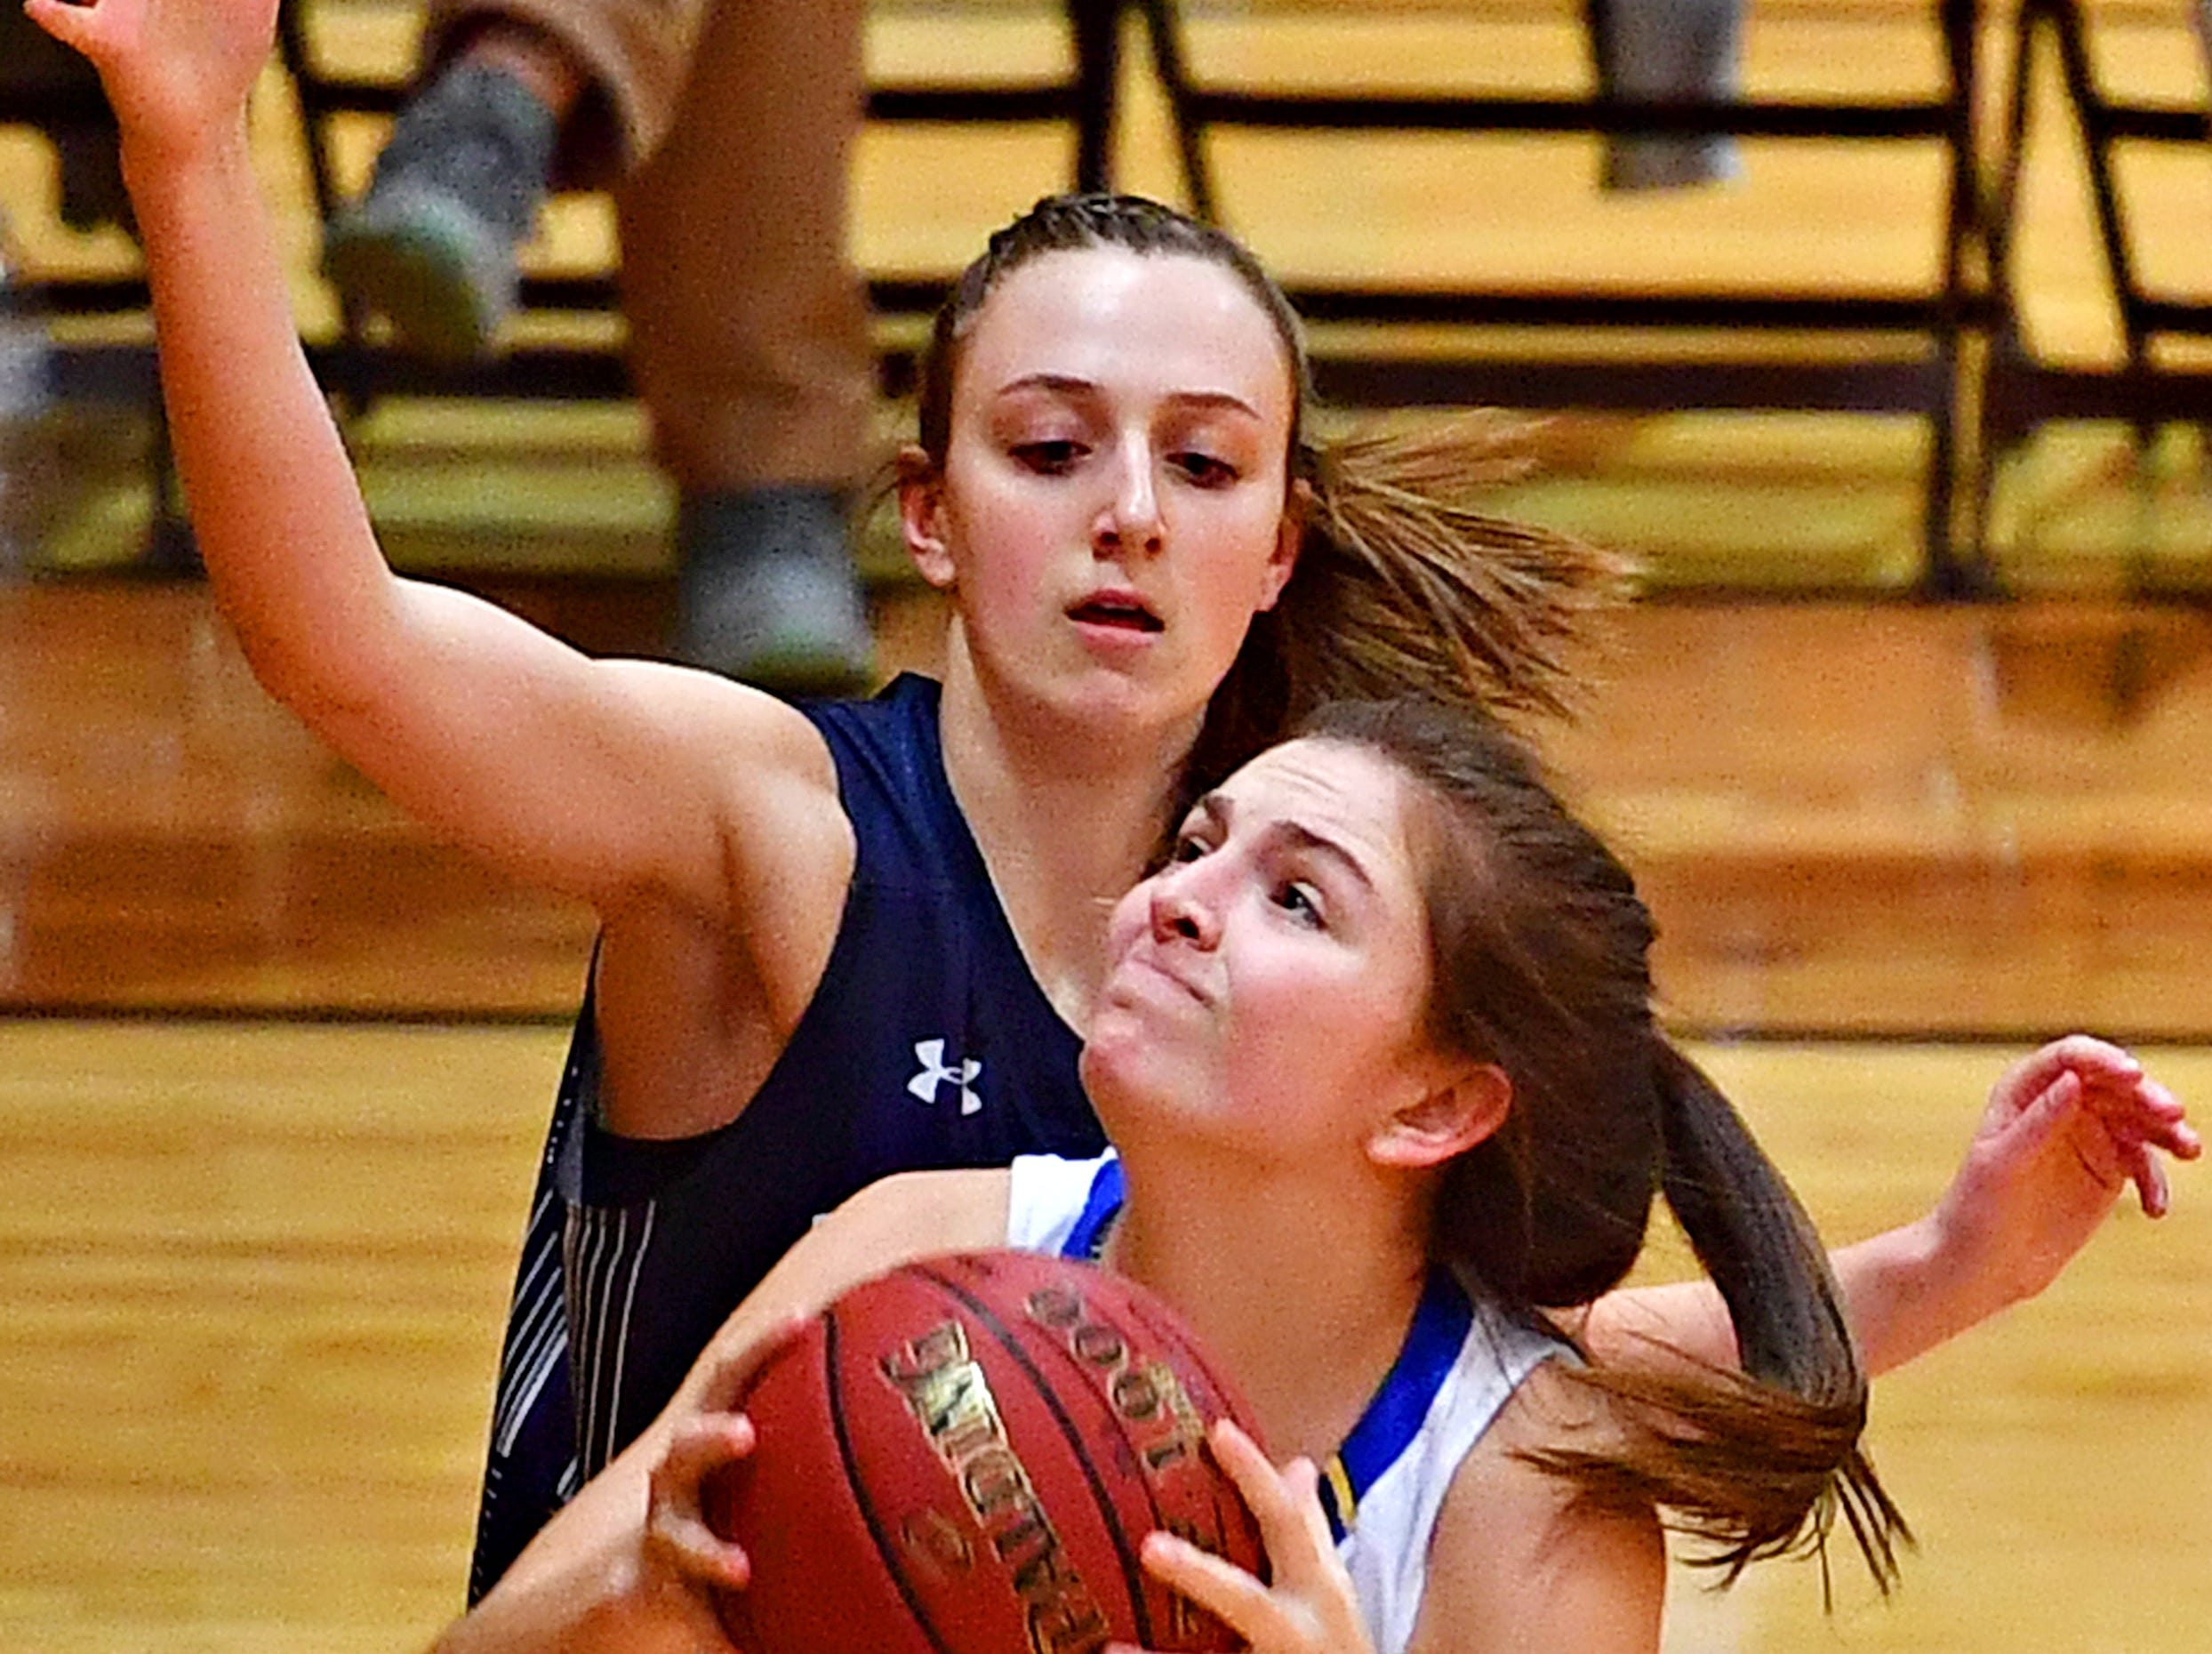 Kennard-Dale's Jaedyn McKeon, front, takes the ball to the basket while Mifflinburg's Mollie Bomgardner defends during PIAA Class 4-A girl's basketball second round at Milton Hershey High School in Hershey, Wednesday, March 13, 2019. Mifflinburg would win the game 51-45. Dawn J. Sagert photo